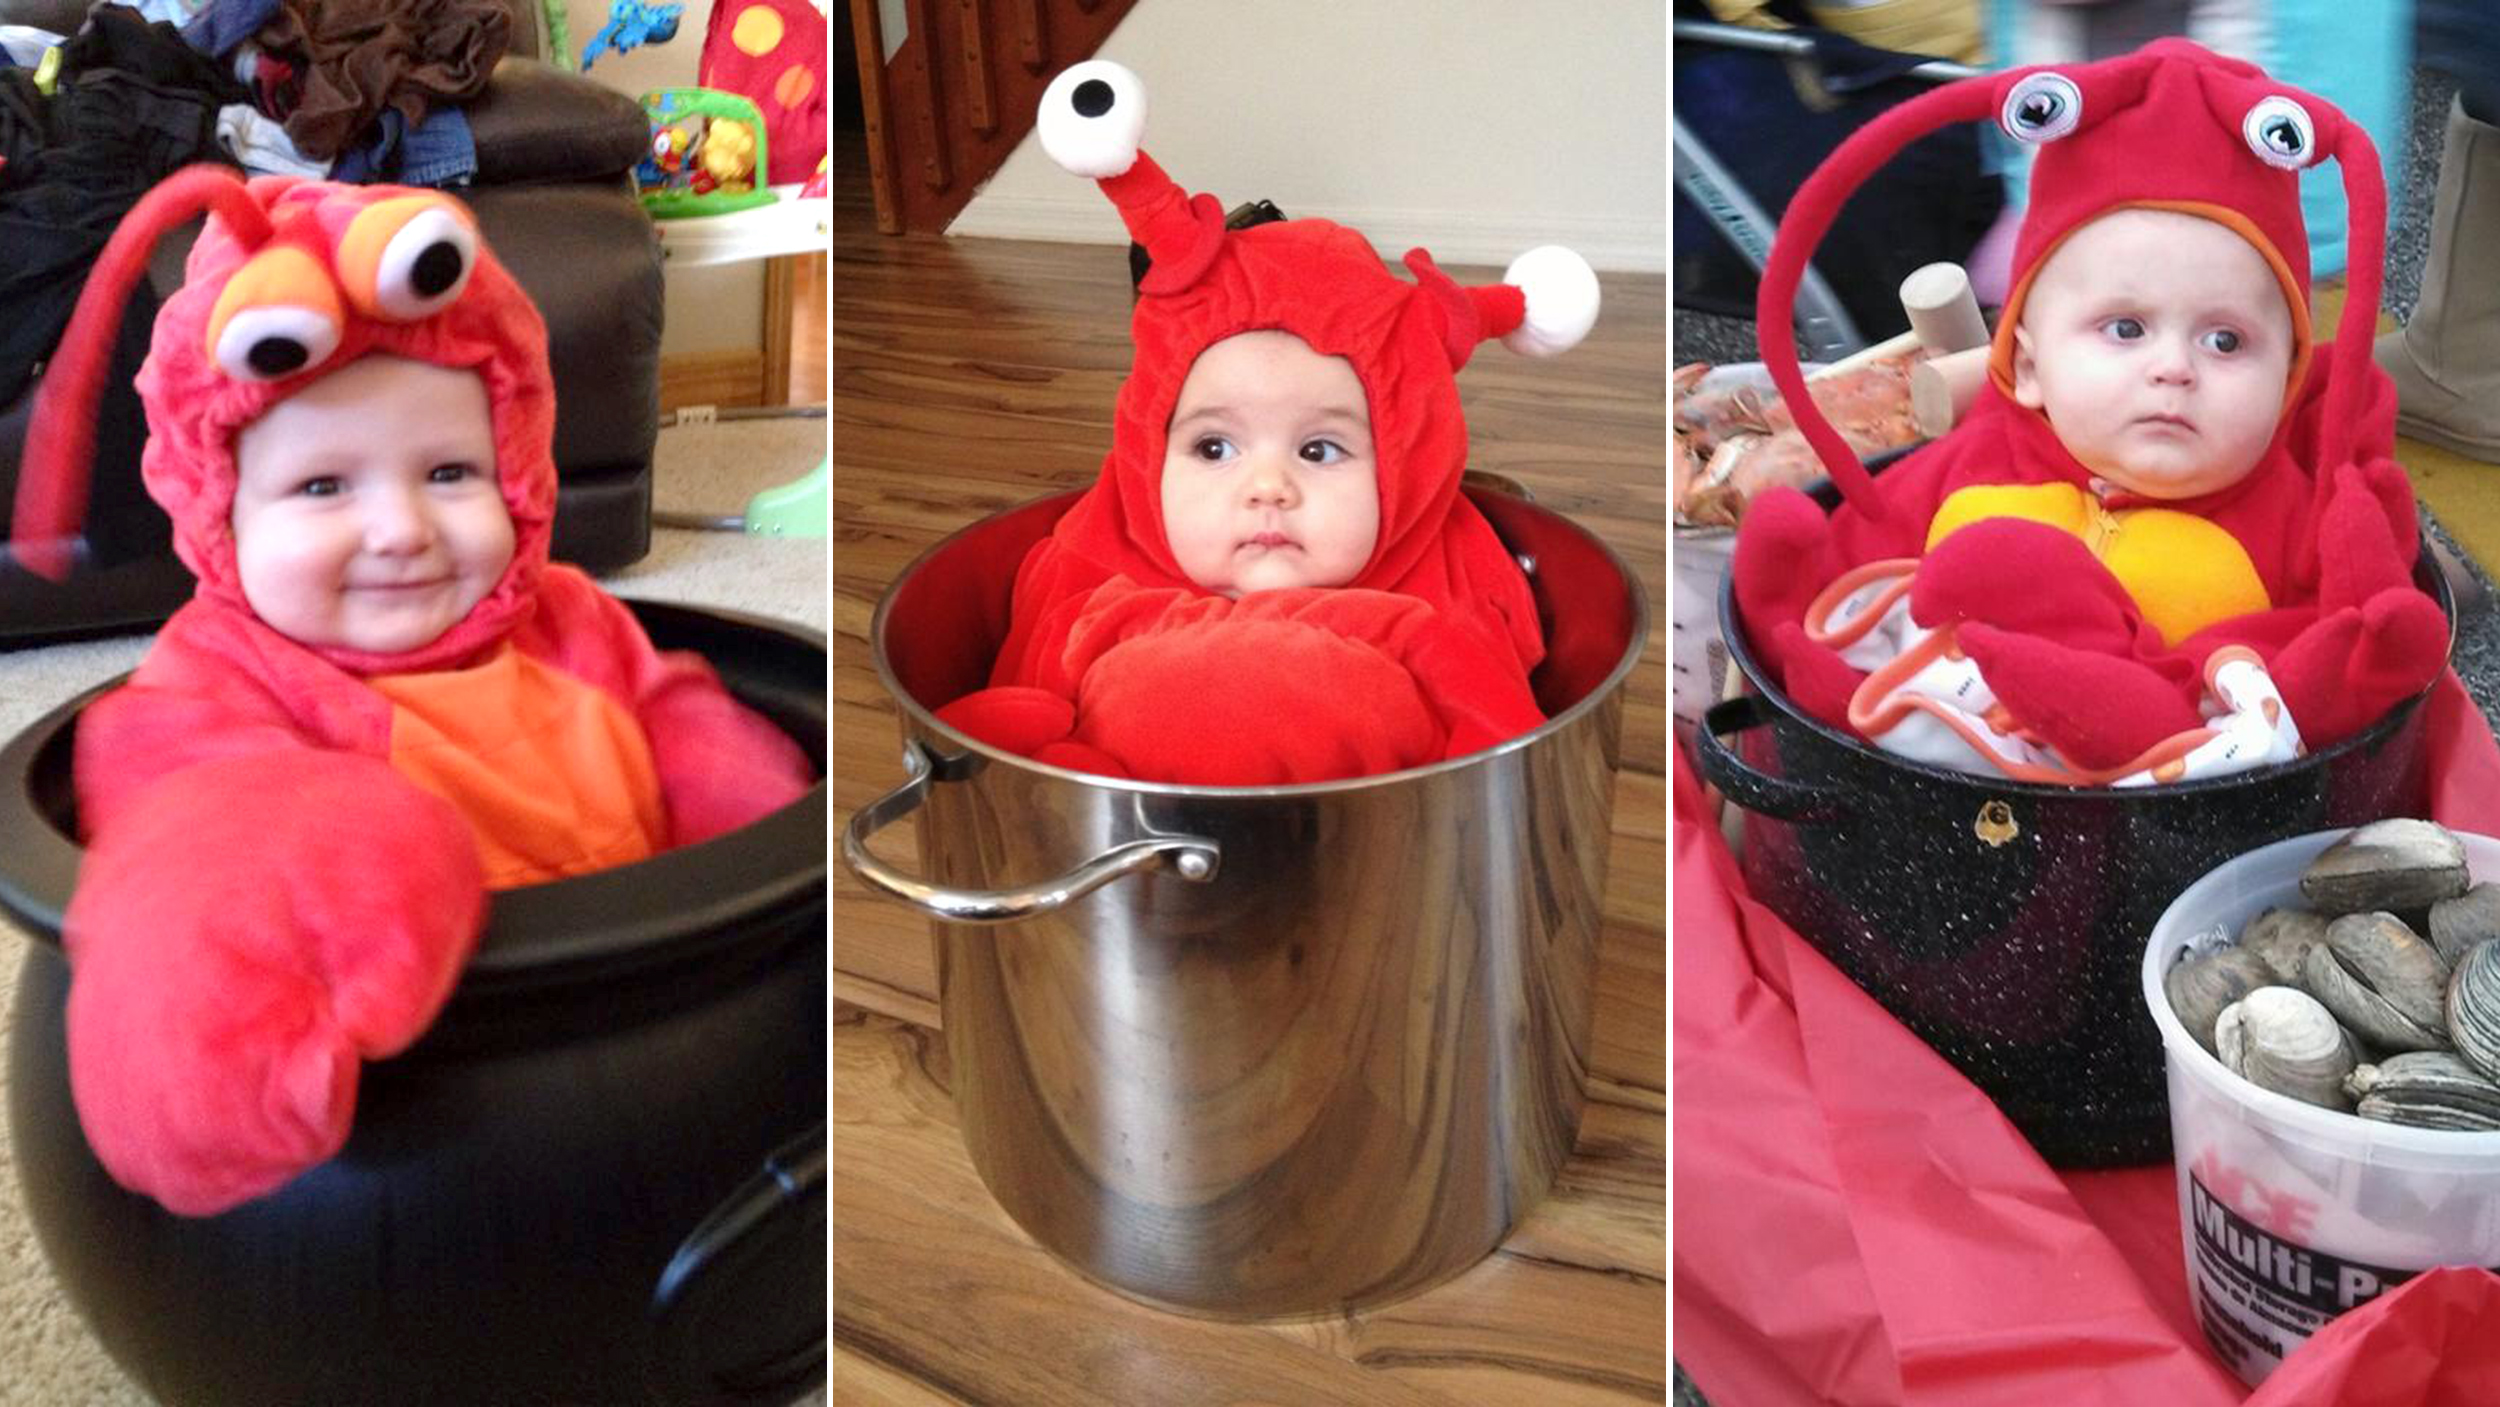 Baby Faschingskostüm Selber Machen Babies 39 Halloween Costumes Check Out These Adorable Tots